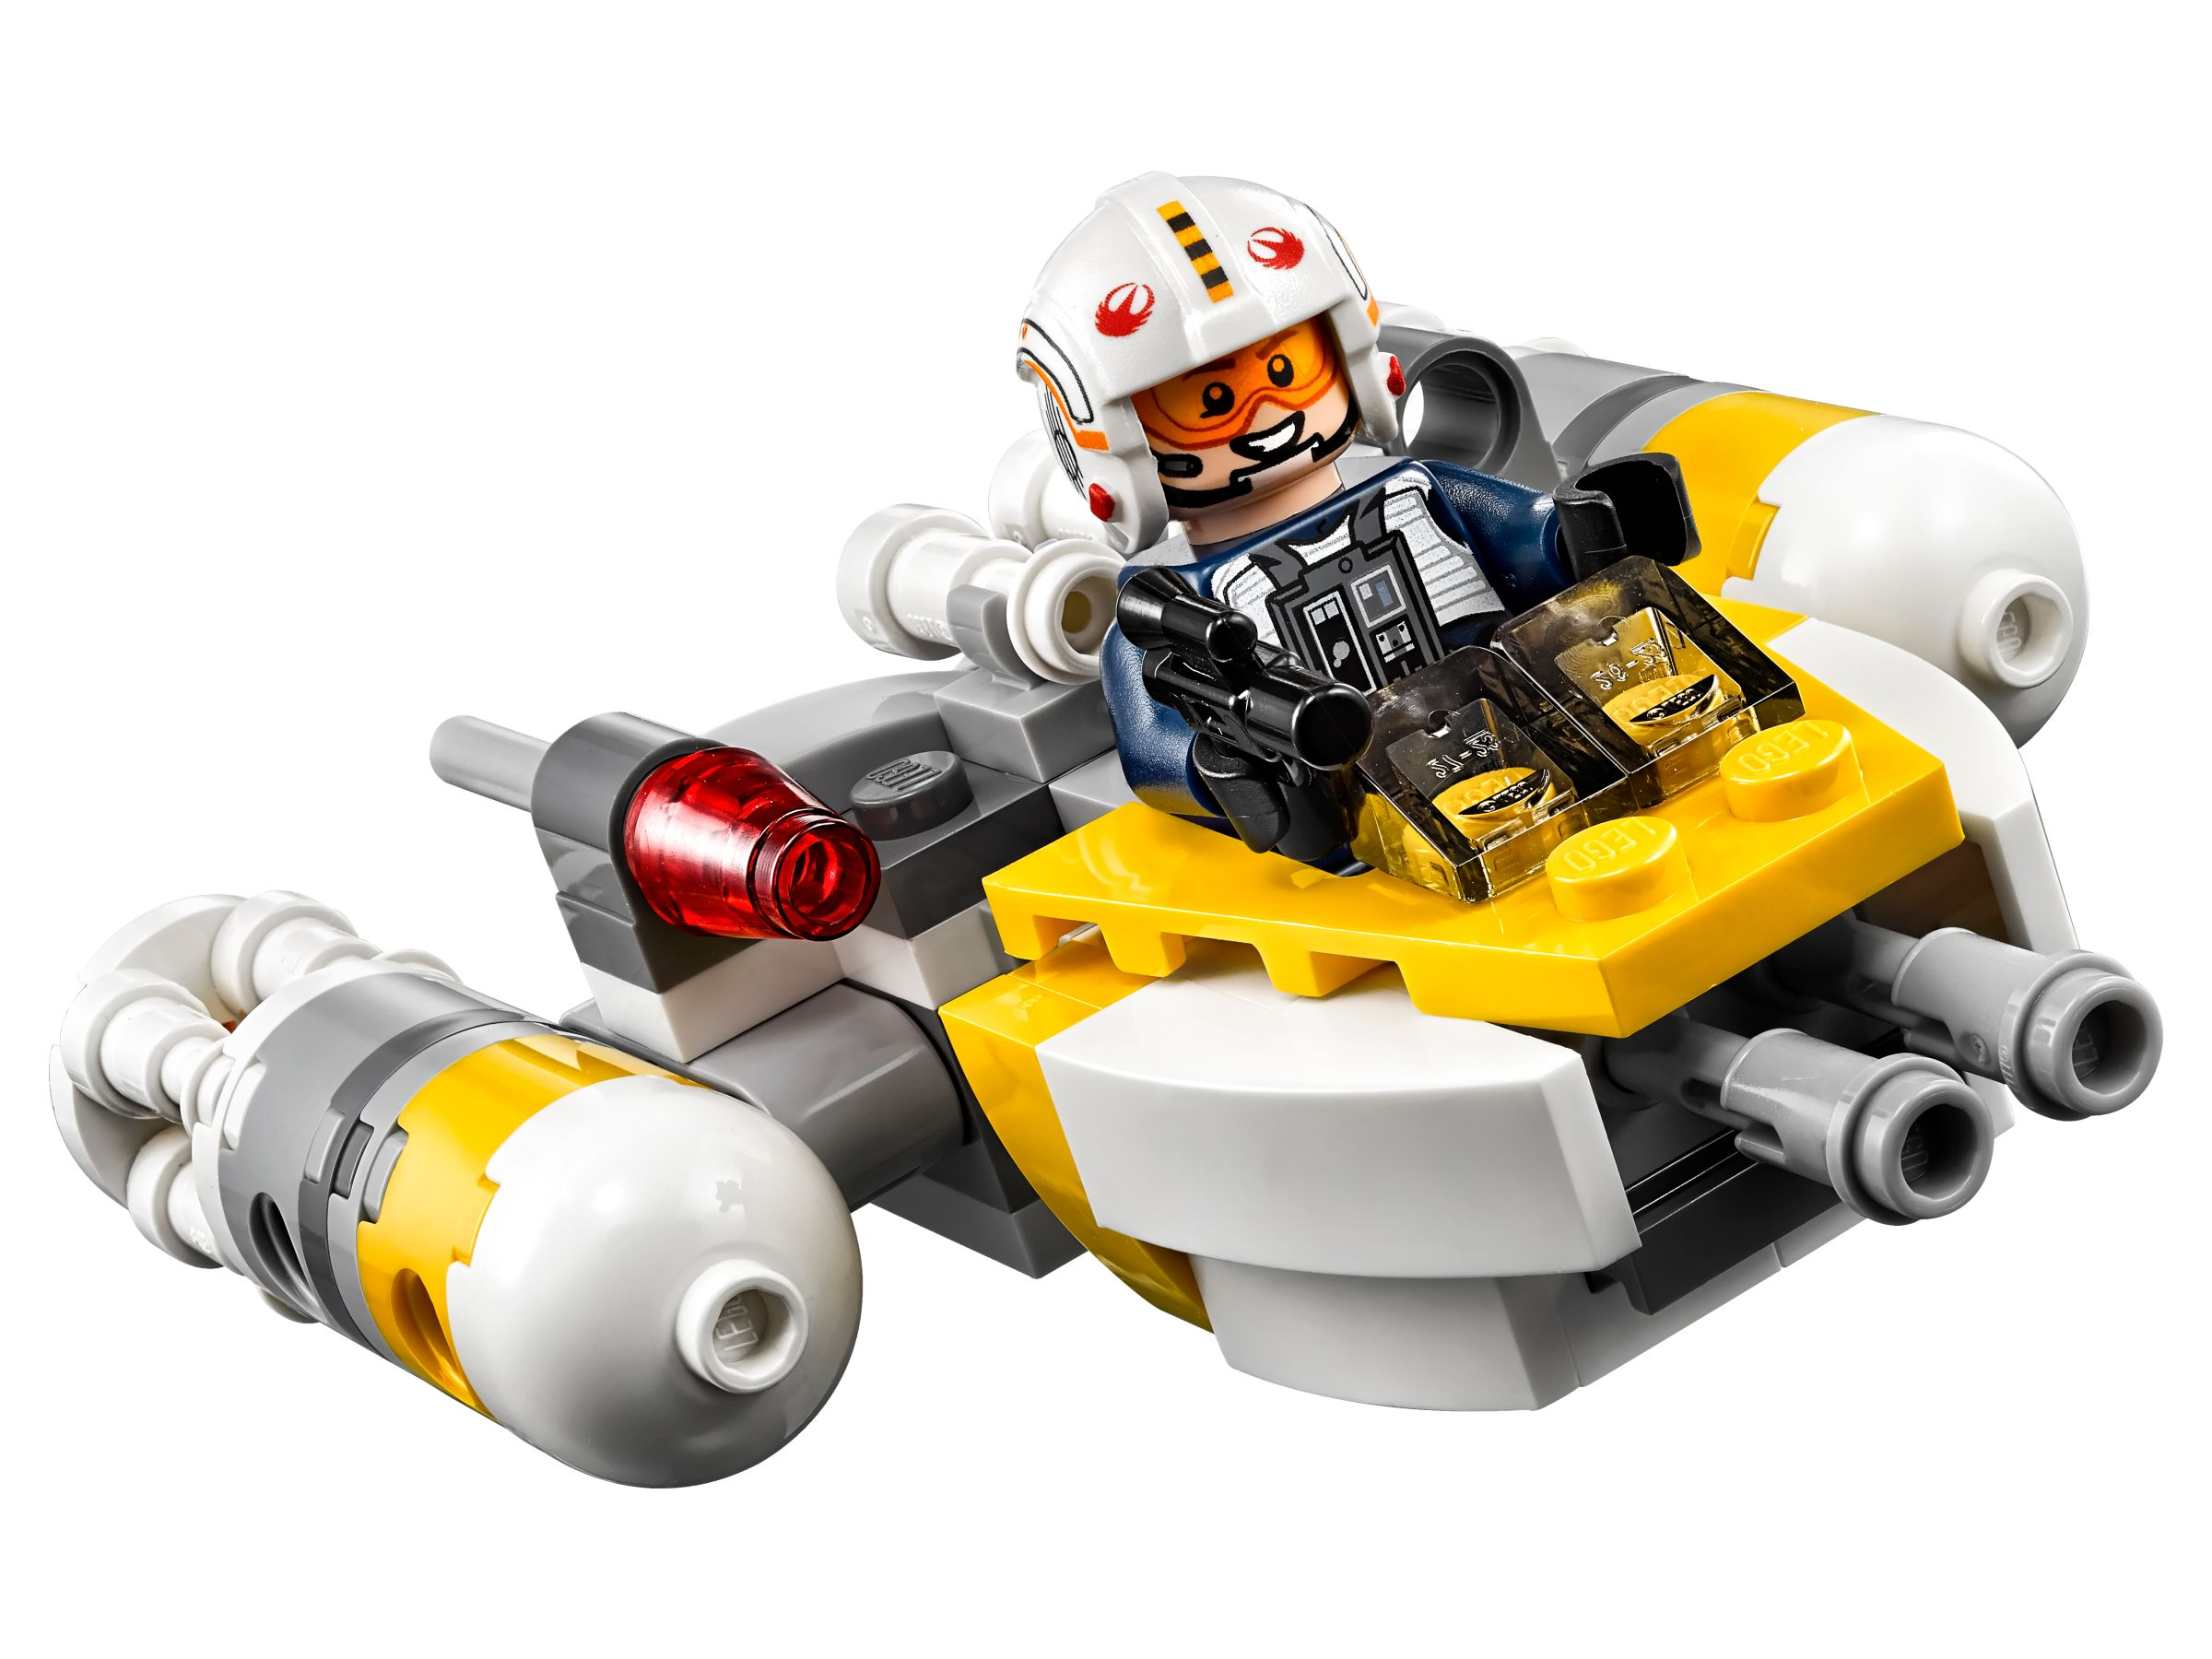 LEGO Star Wars 75162 Y-Wing™ Microfighter LEGO_75162_alt2.jpg